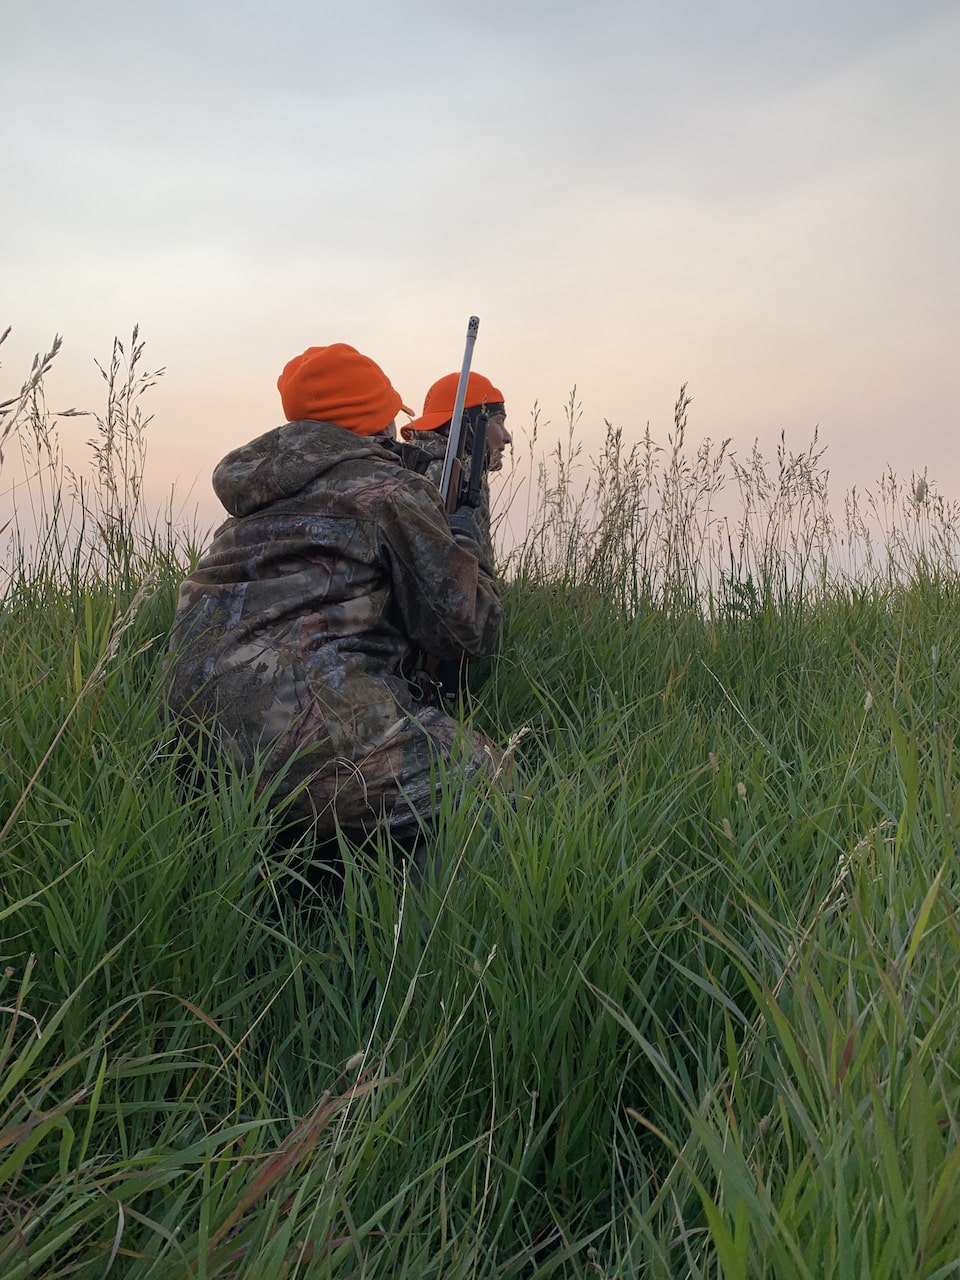 Stalking deer in the tall grass